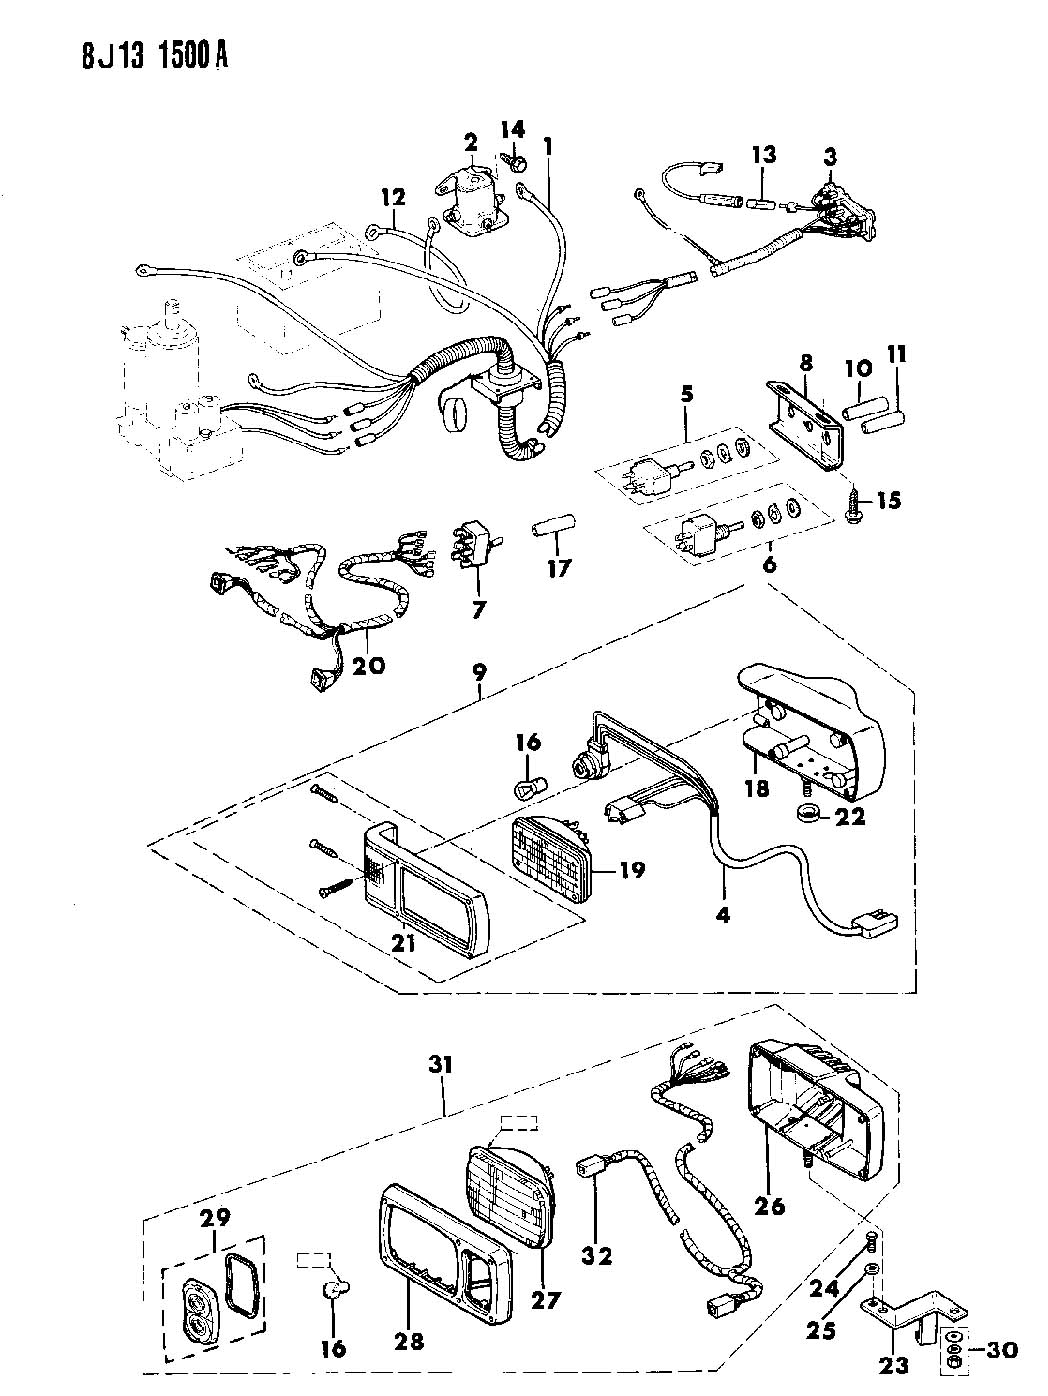 Pin snow plow coloring pages on pinterest for Snow plow coloring pages